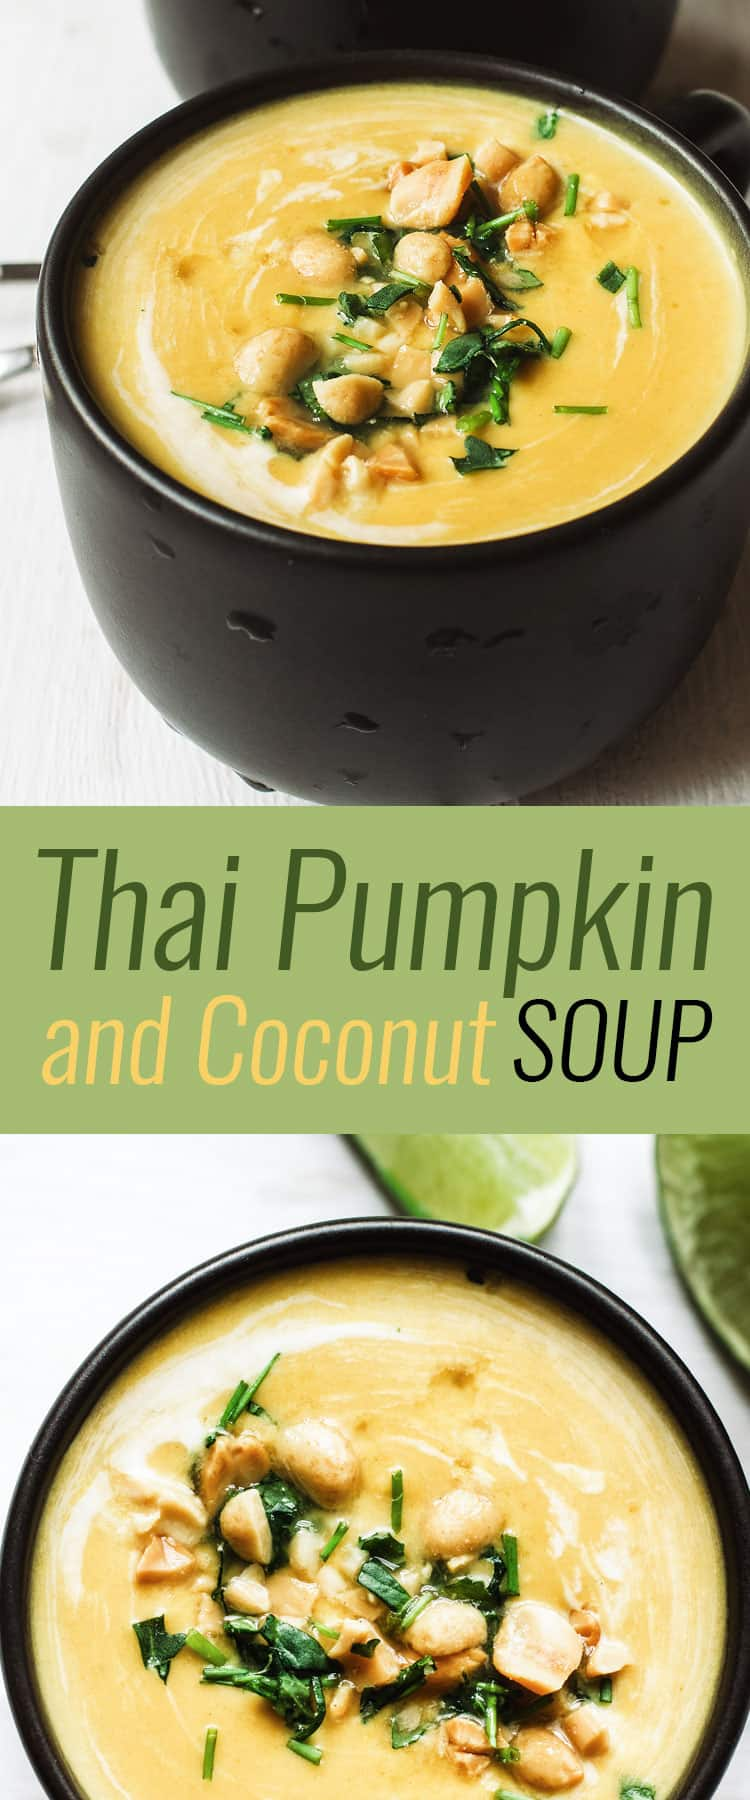 Have you ever tried a soup like Thai Pumpkin and Coconut before?